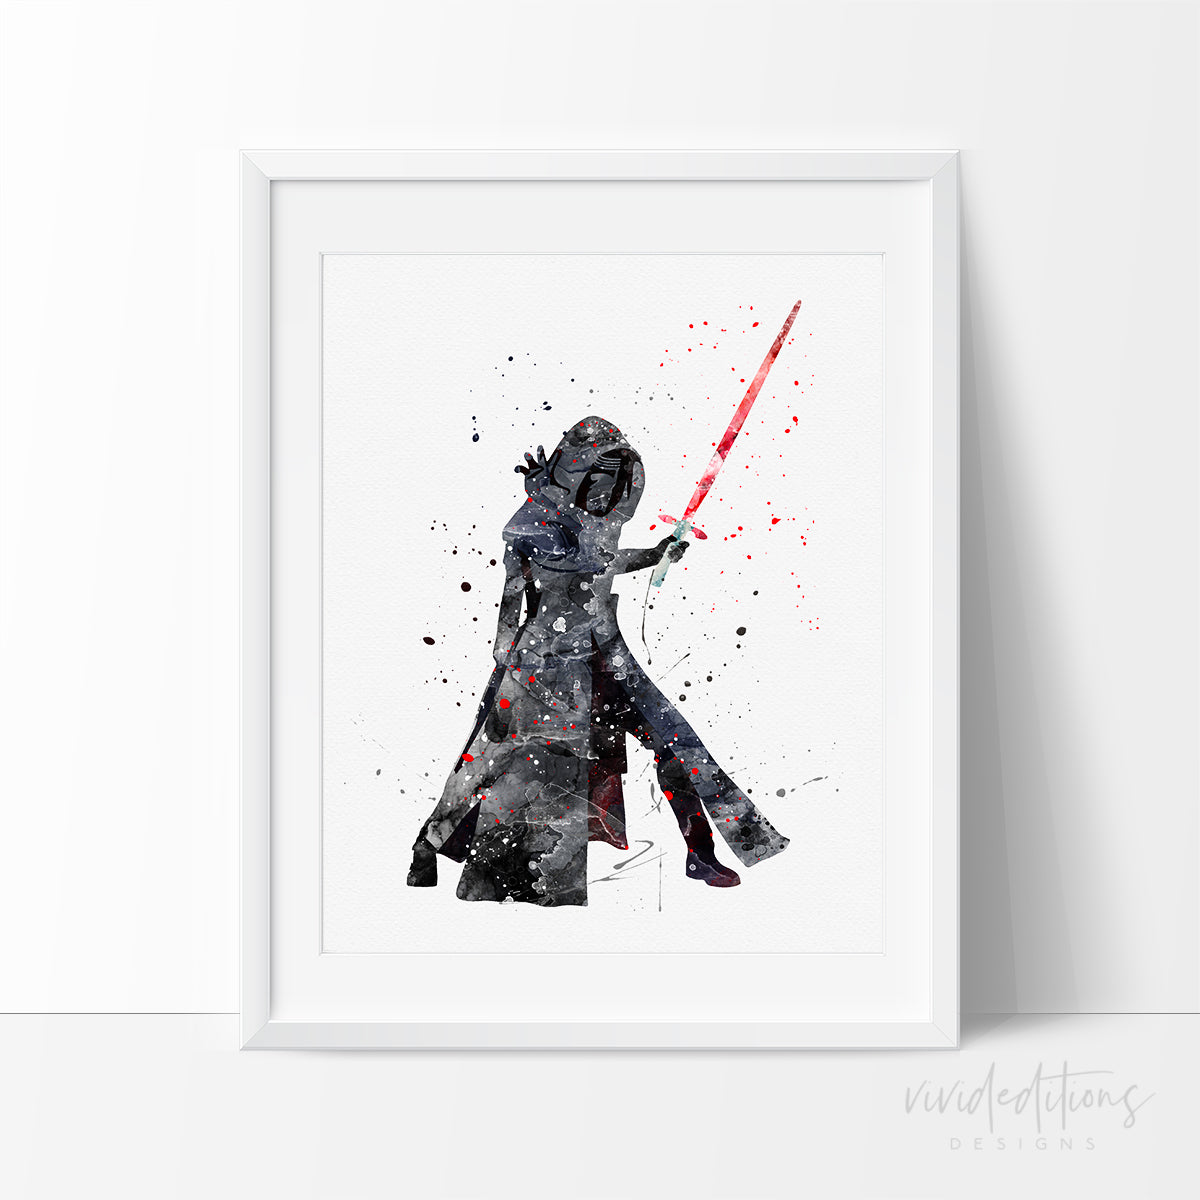 Kylo Ren Star Wars Watercolor Art Print Art Print - VIVIDEDITIONS